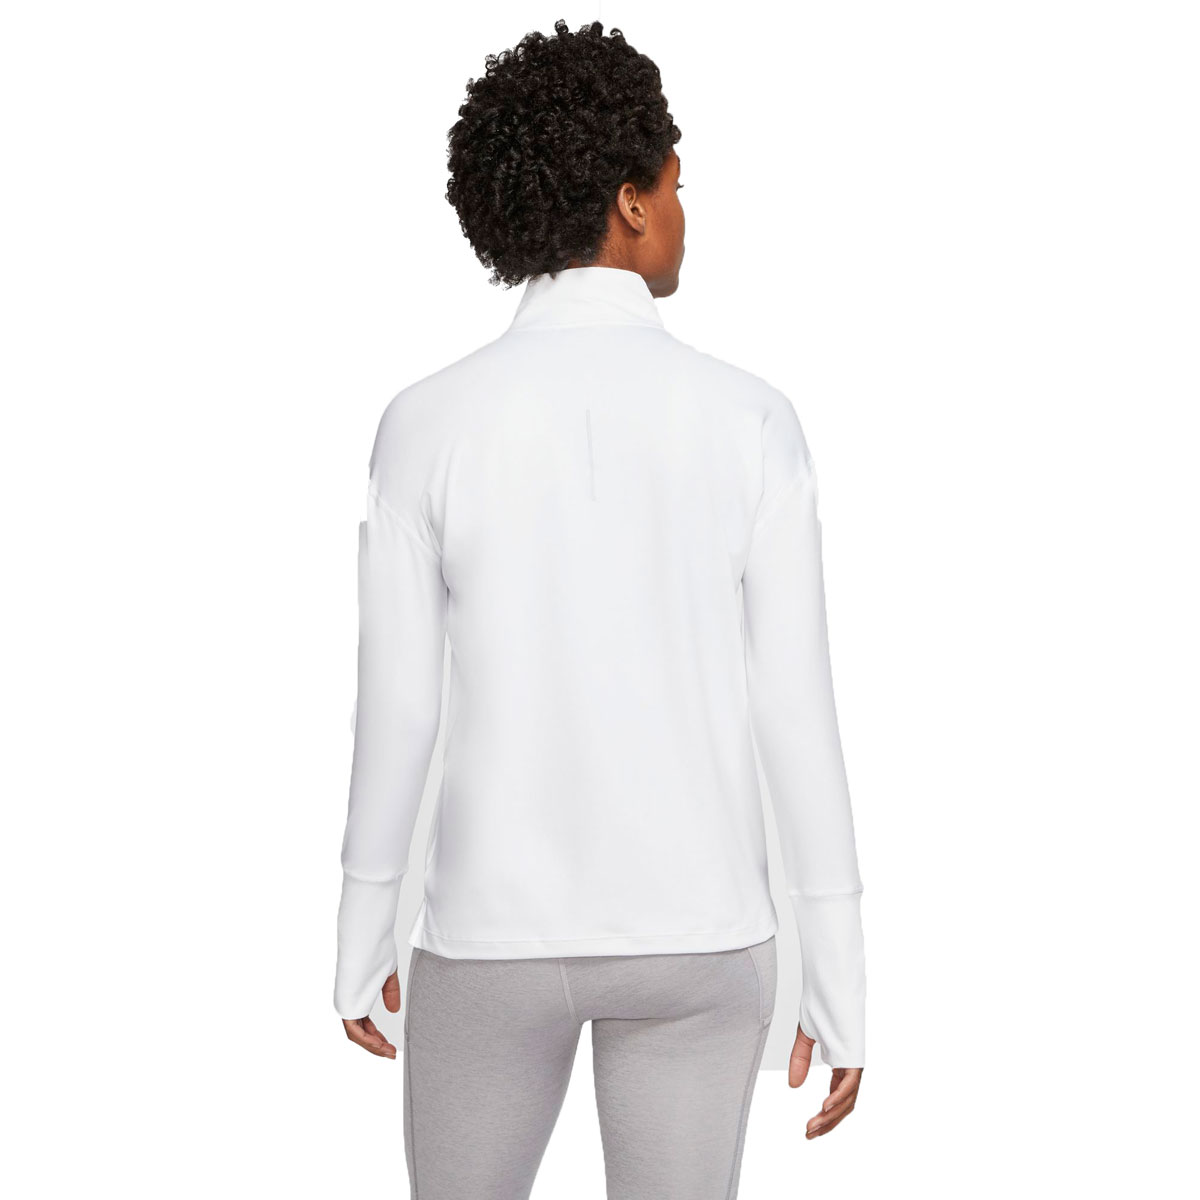 Women's Nike Element 1/2-Zip Running Top - Color: White/Reflective Silver - Size: S, White/Reflective Silver, large, image 2